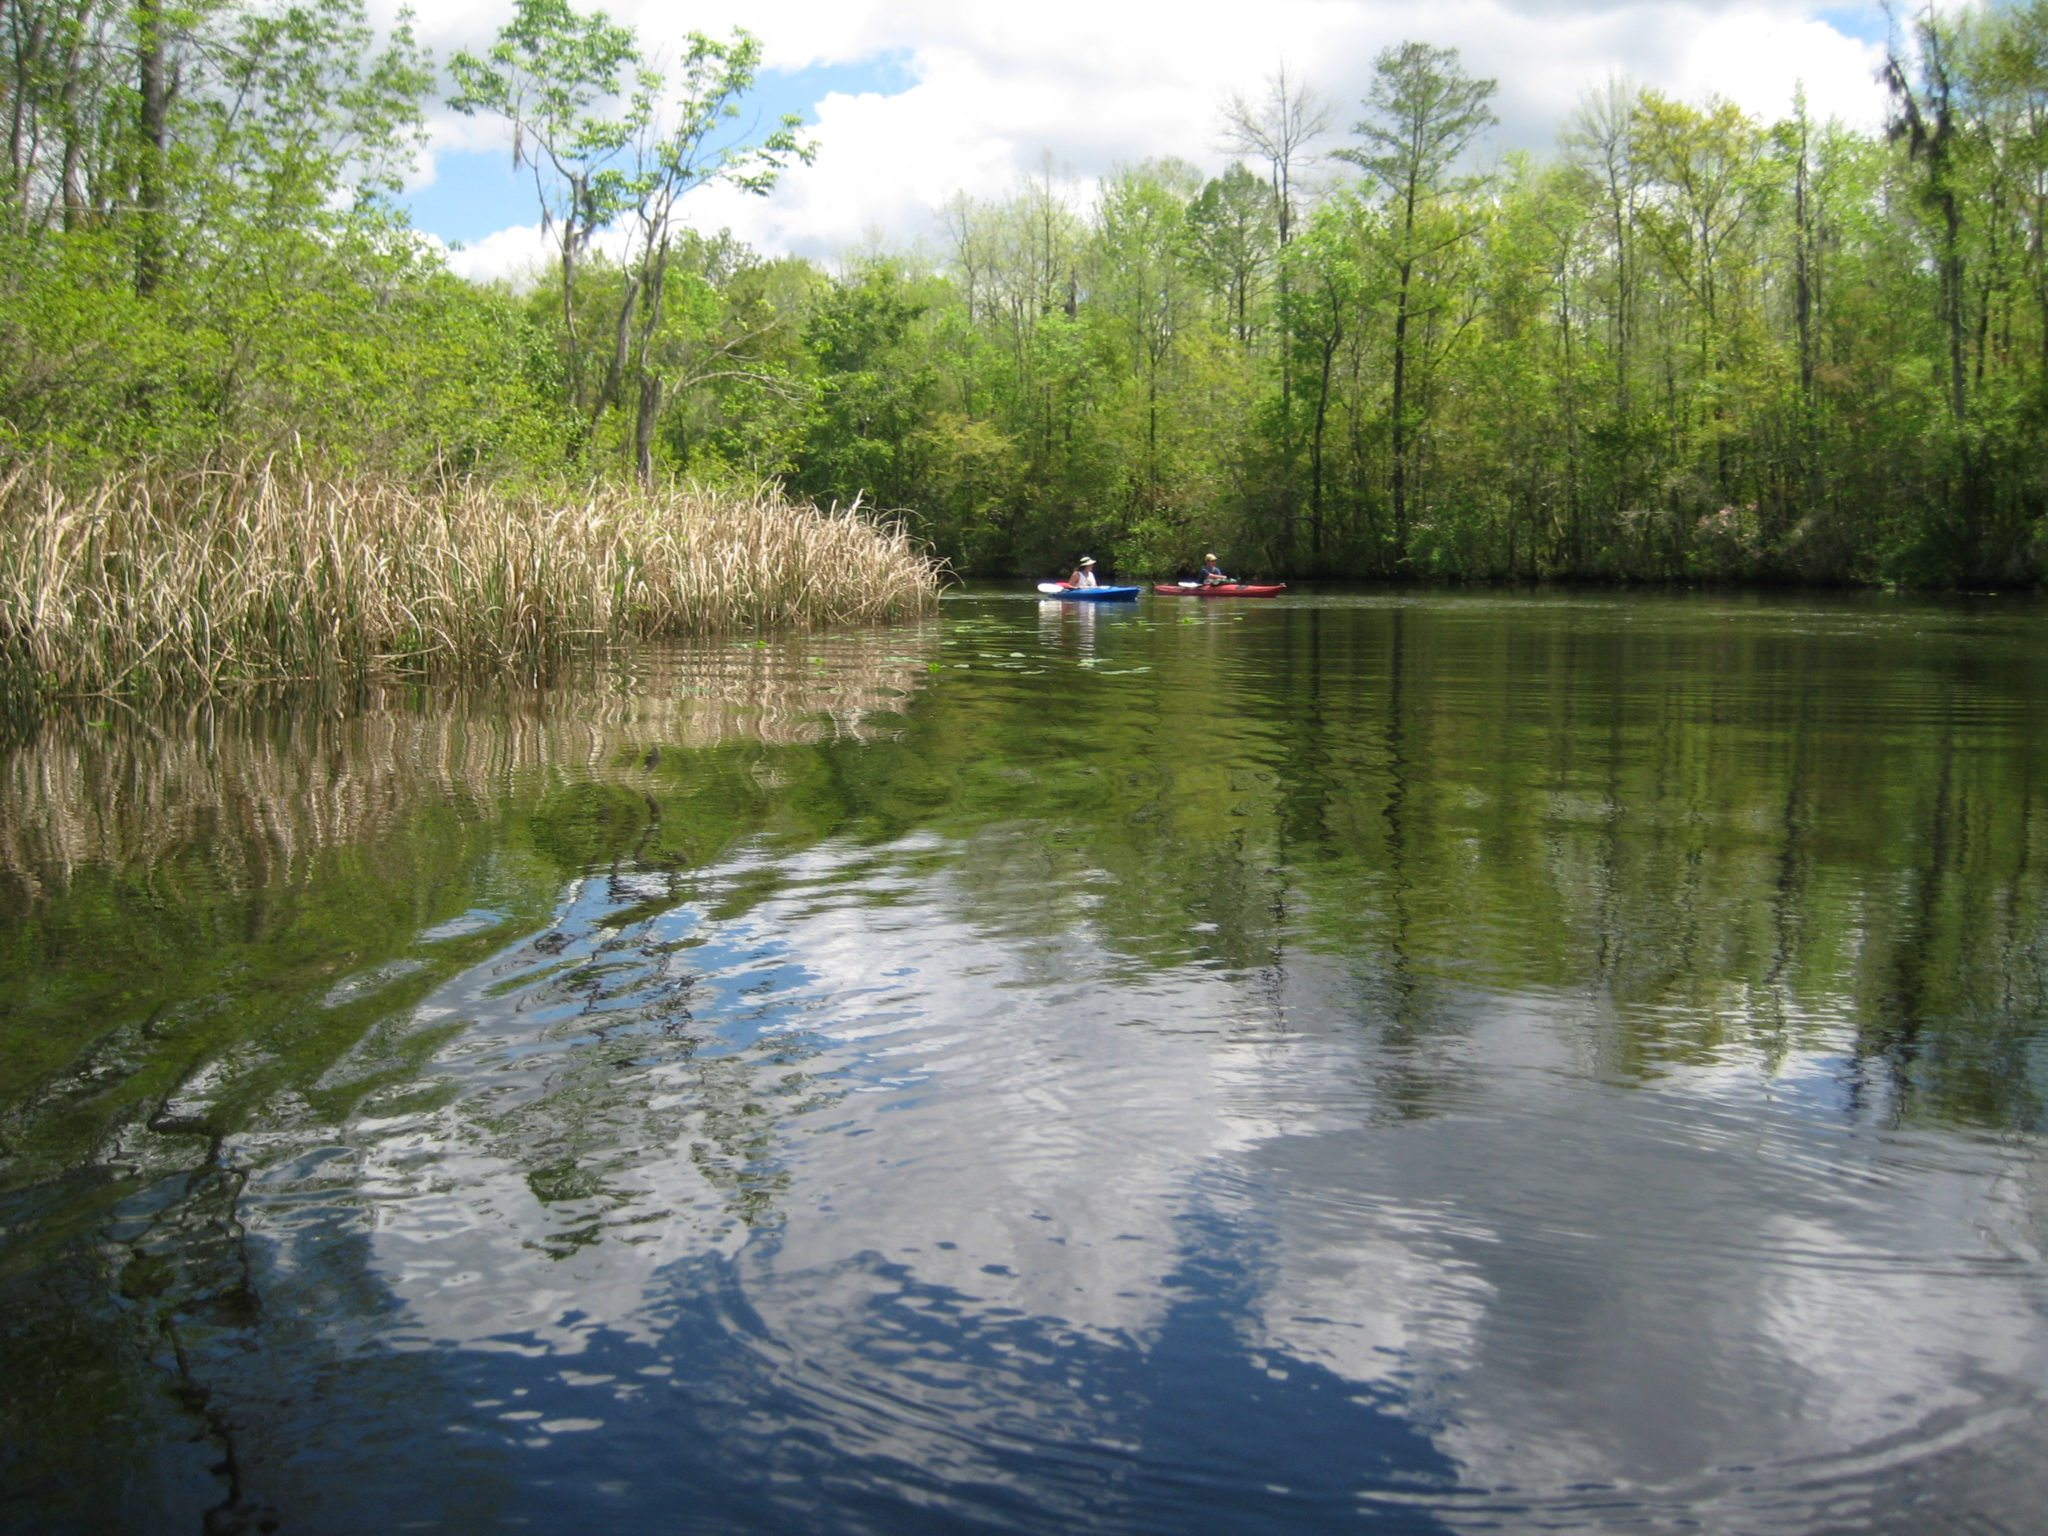 Wetland forests provide many recreation opportunities, including fishing, hunting, and boating.